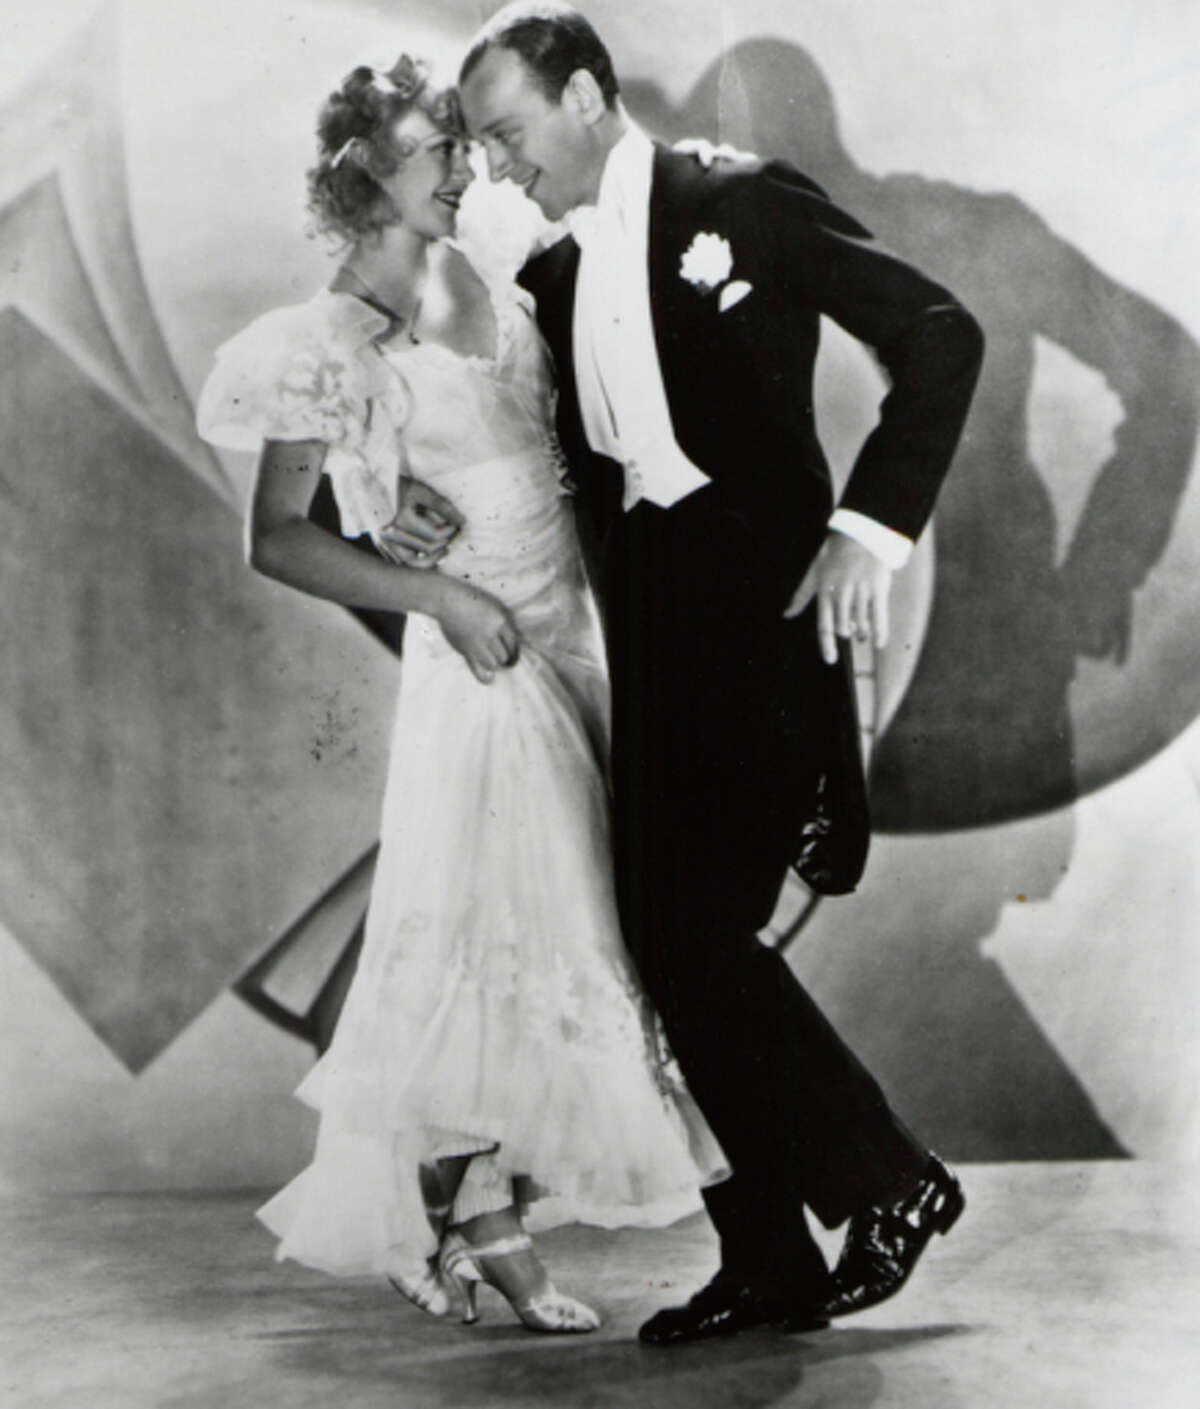 """A good Fred Astaire film is any one with Ginger Rogers, such as """"Flying down to Rio."""""""